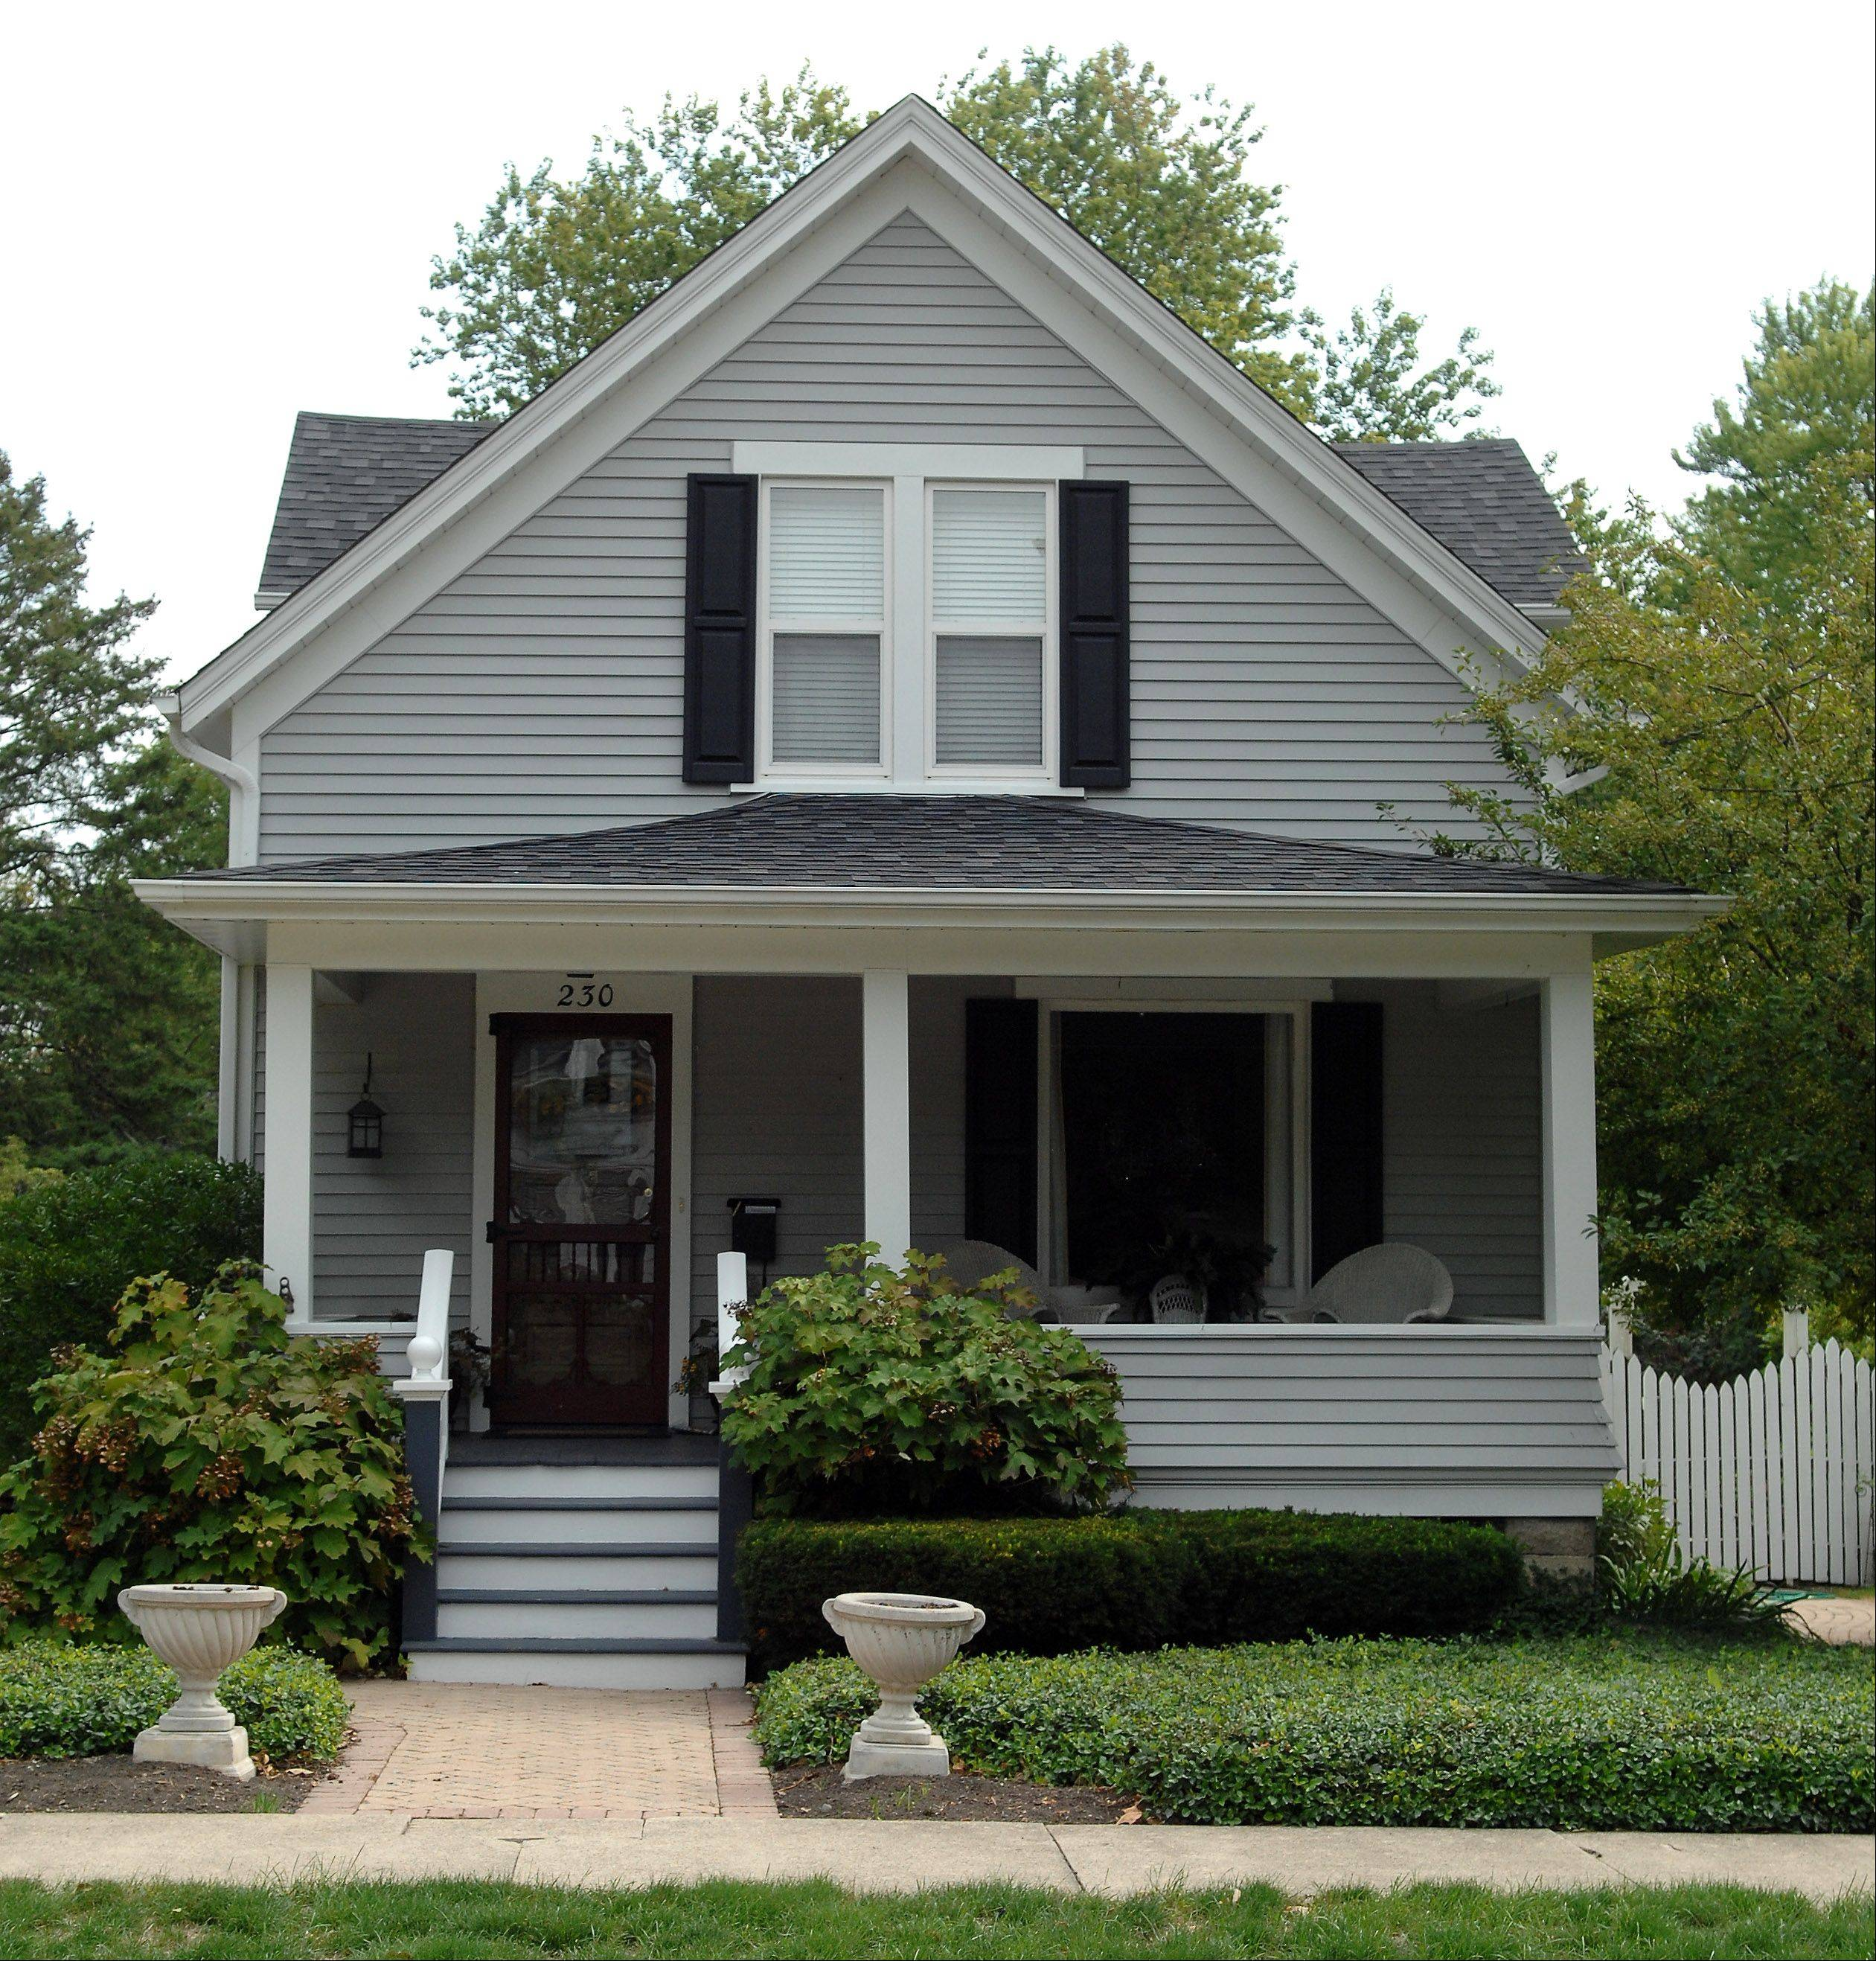 A compact Victorian at 230 N. Lincoln St. will be featured on the Batavia House Walk.